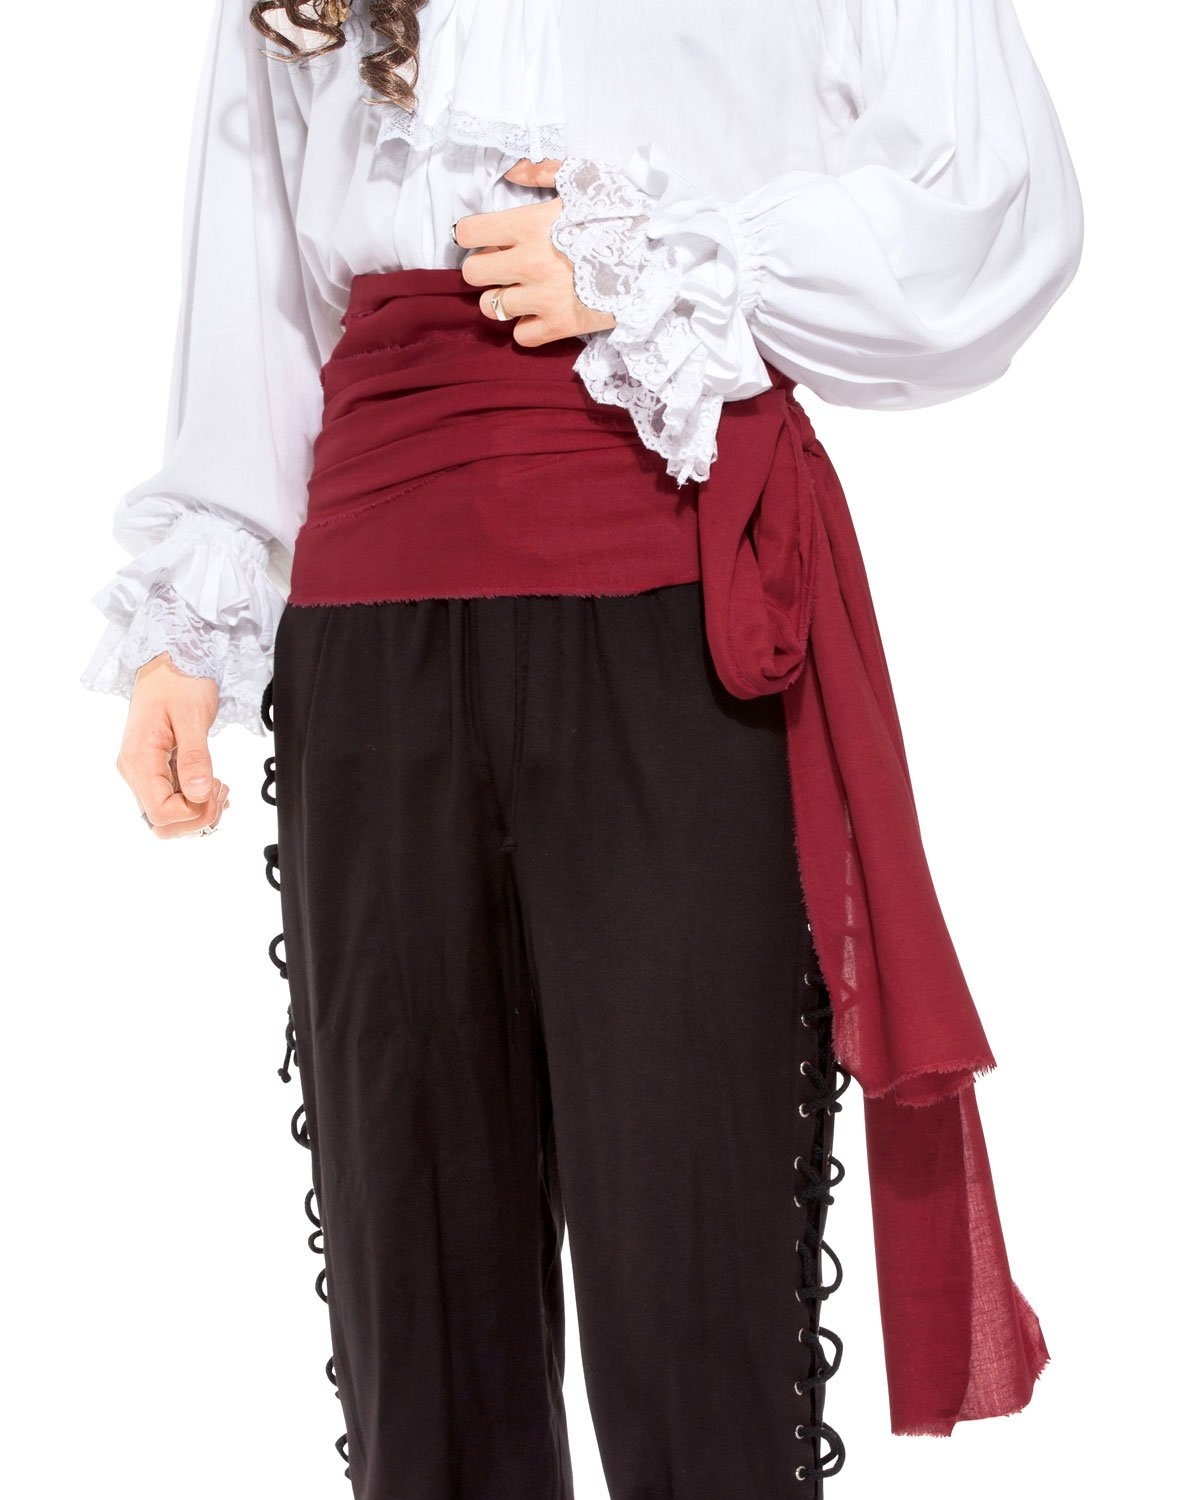 Pirate Medieval Renaissance Linen Large Sash [Chocolate]